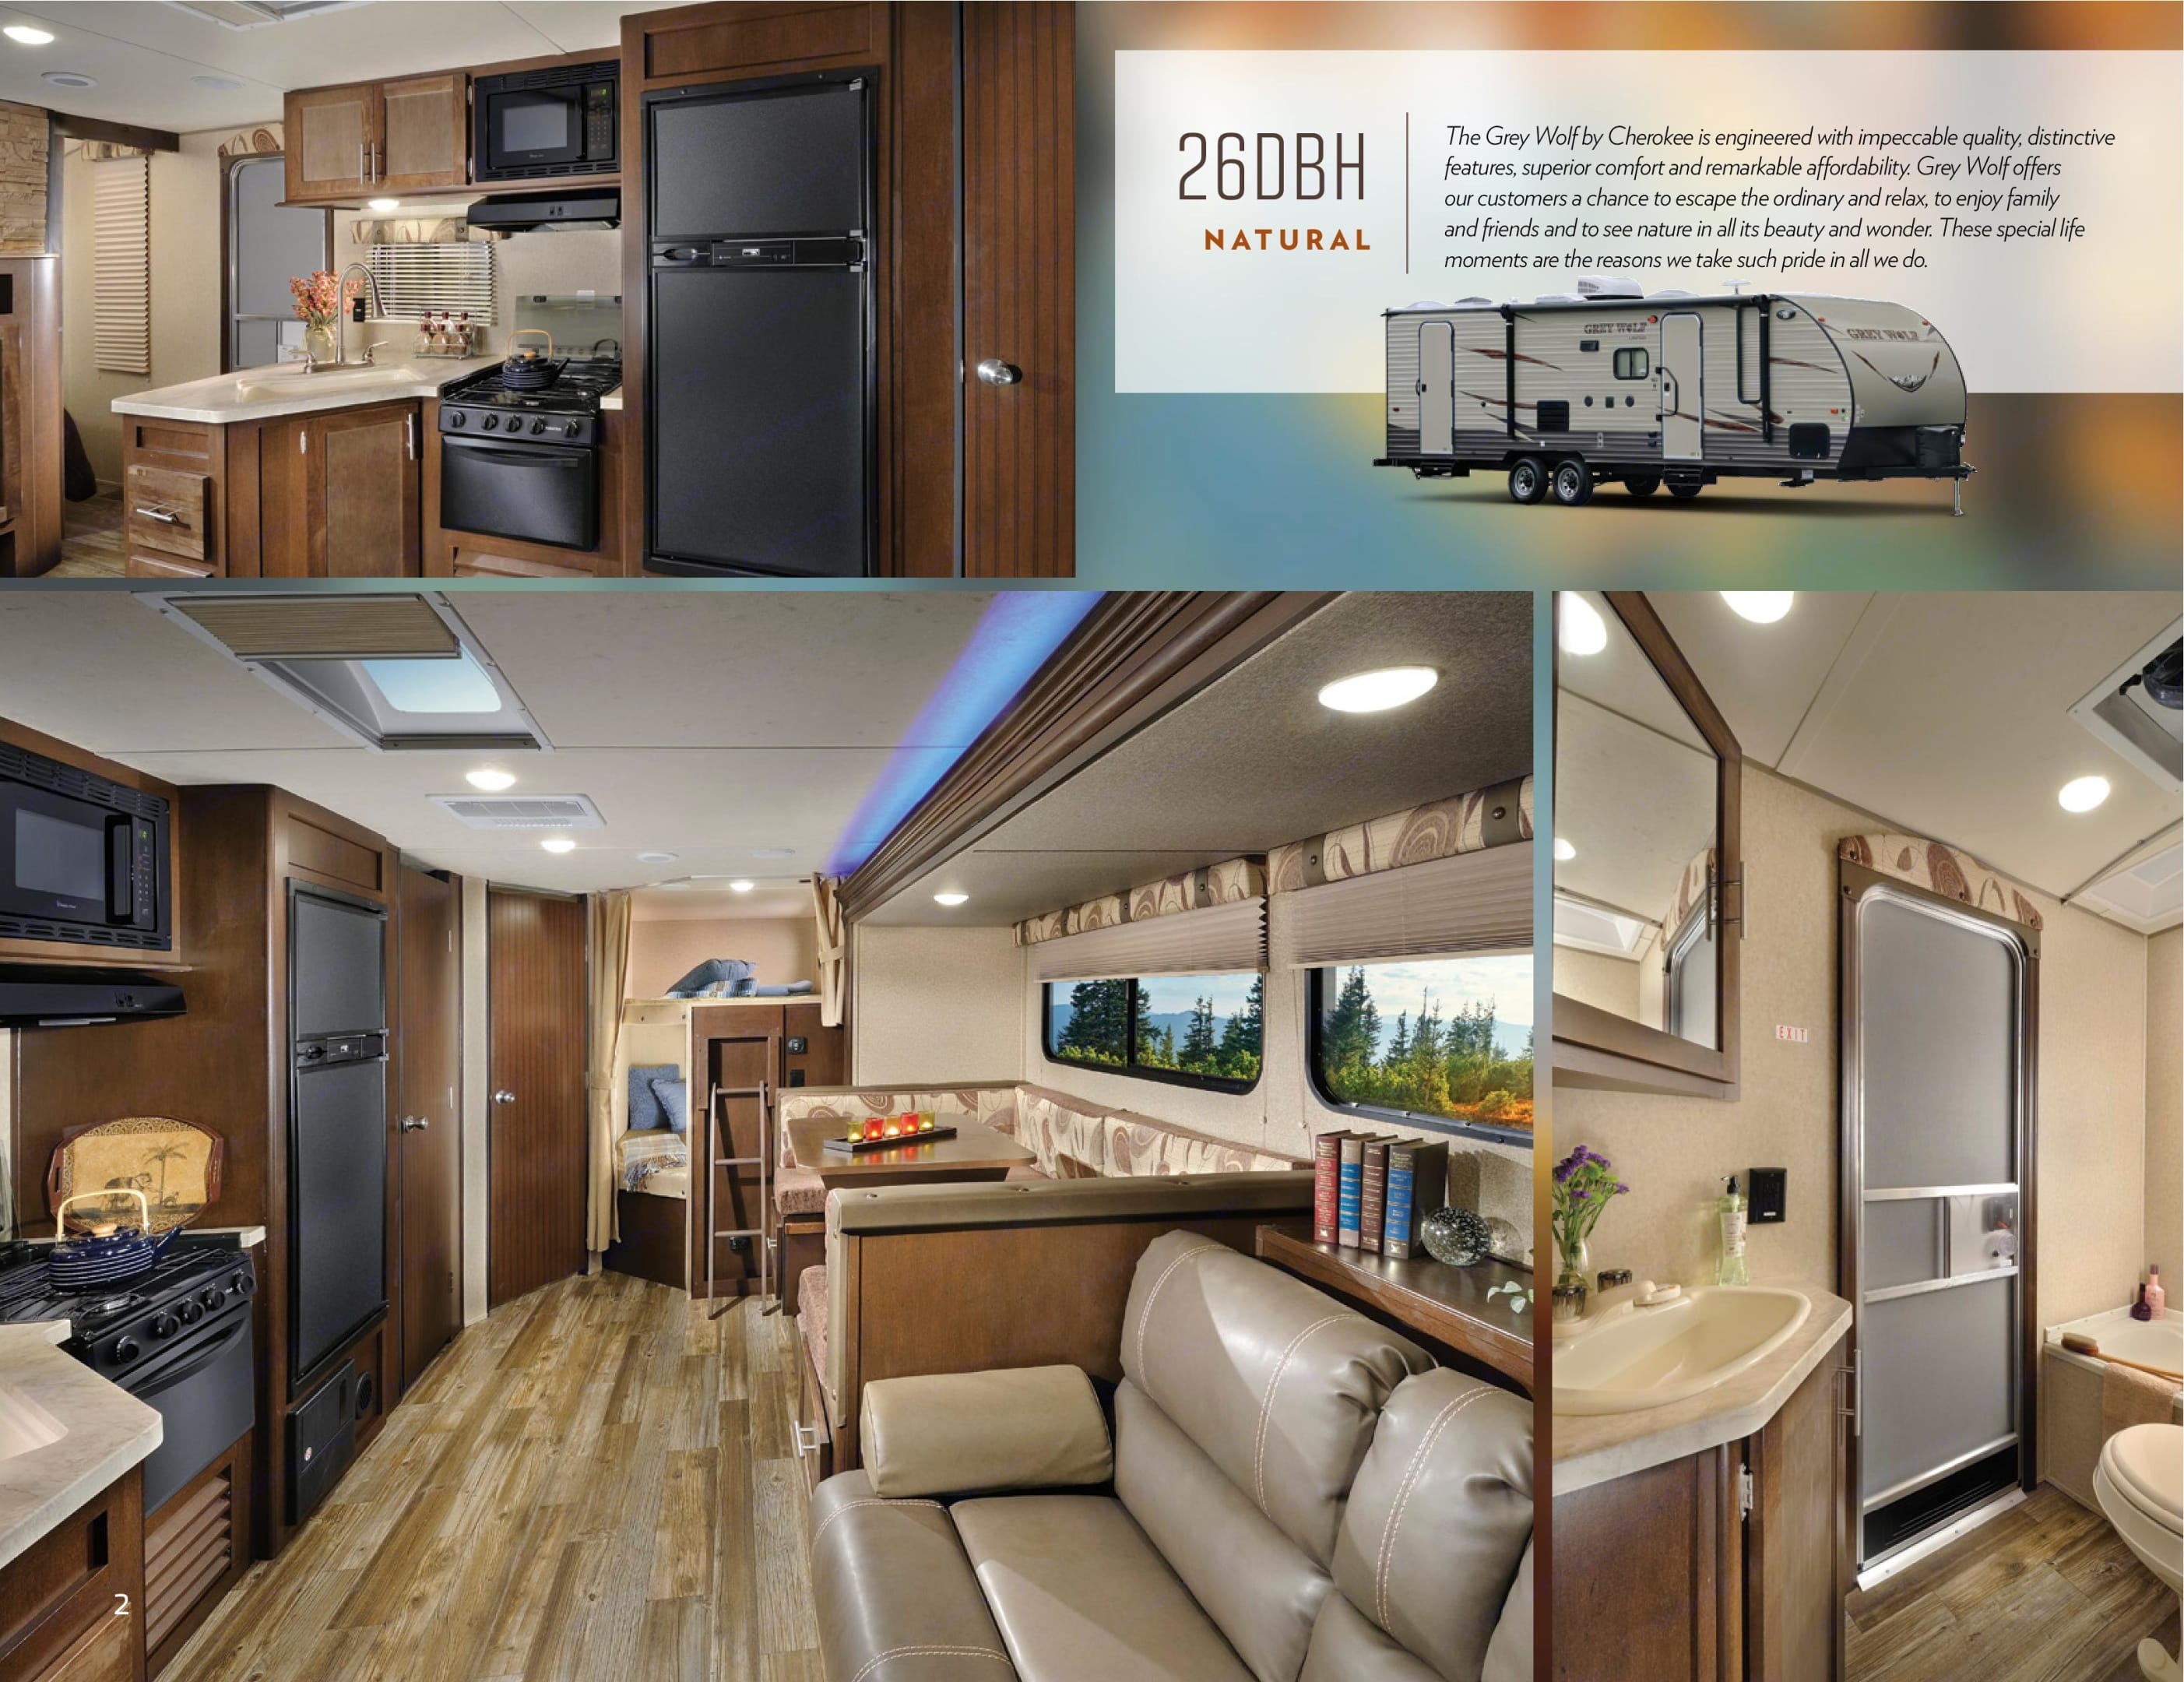 Interior Pics of our model (we have exact color scheme). Forest River Cherokee Grey Wolf 2016